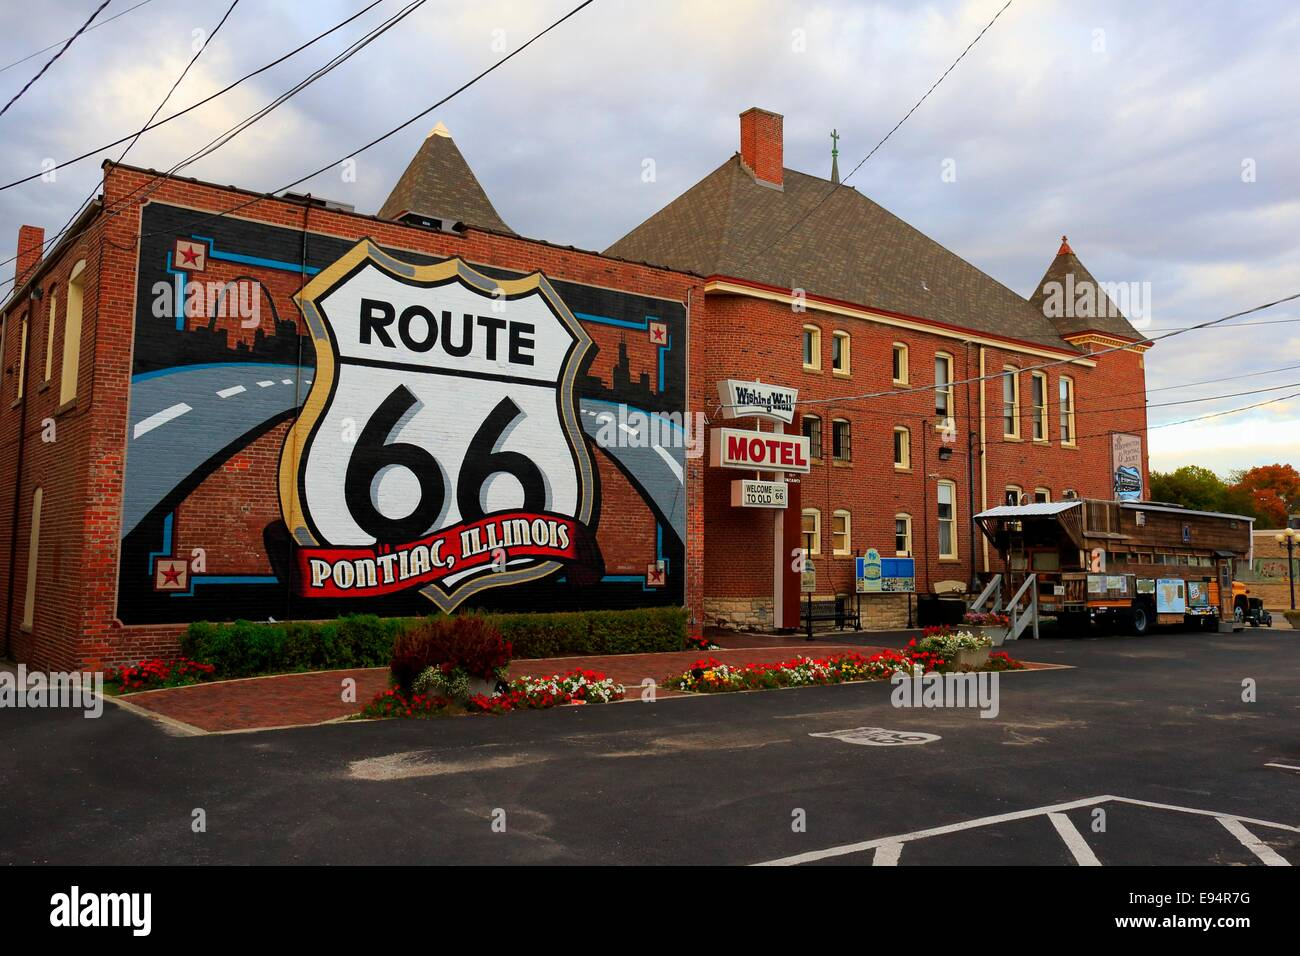 Route 66 mural route 66 museum pontiac illinois stock for Route 66 mural